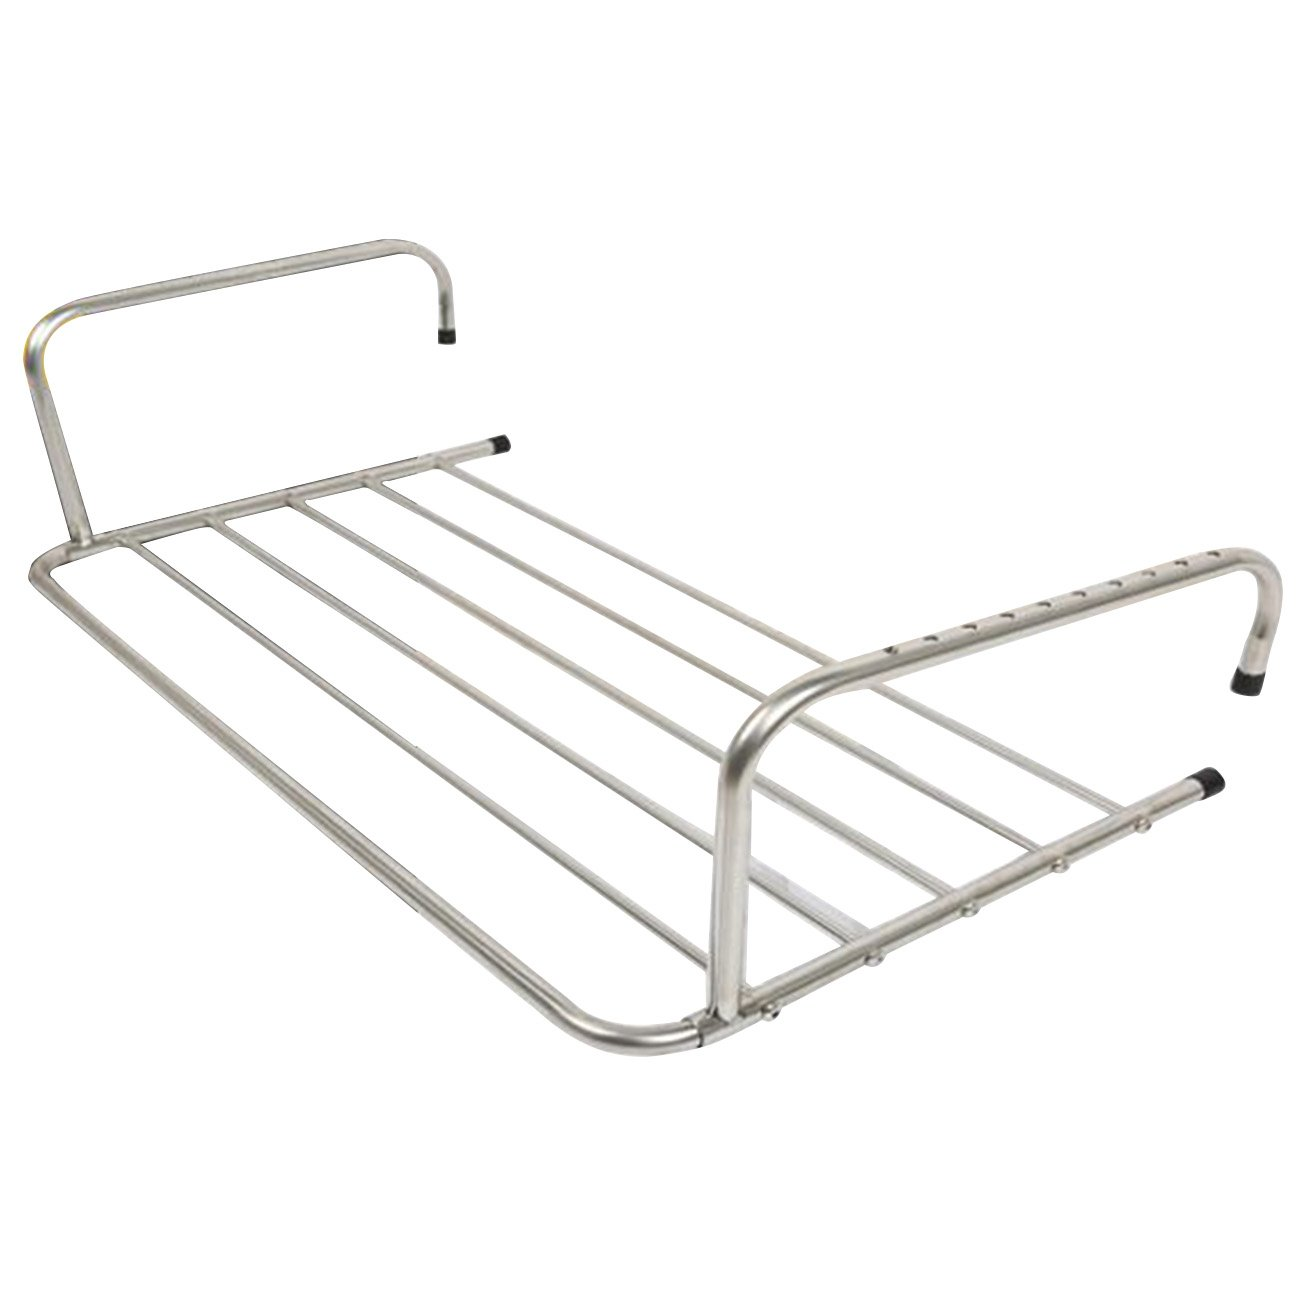 THEE Foldable Laundry Drying Rack Shoes Clothes Airer Towel Hanger for Balcony Window